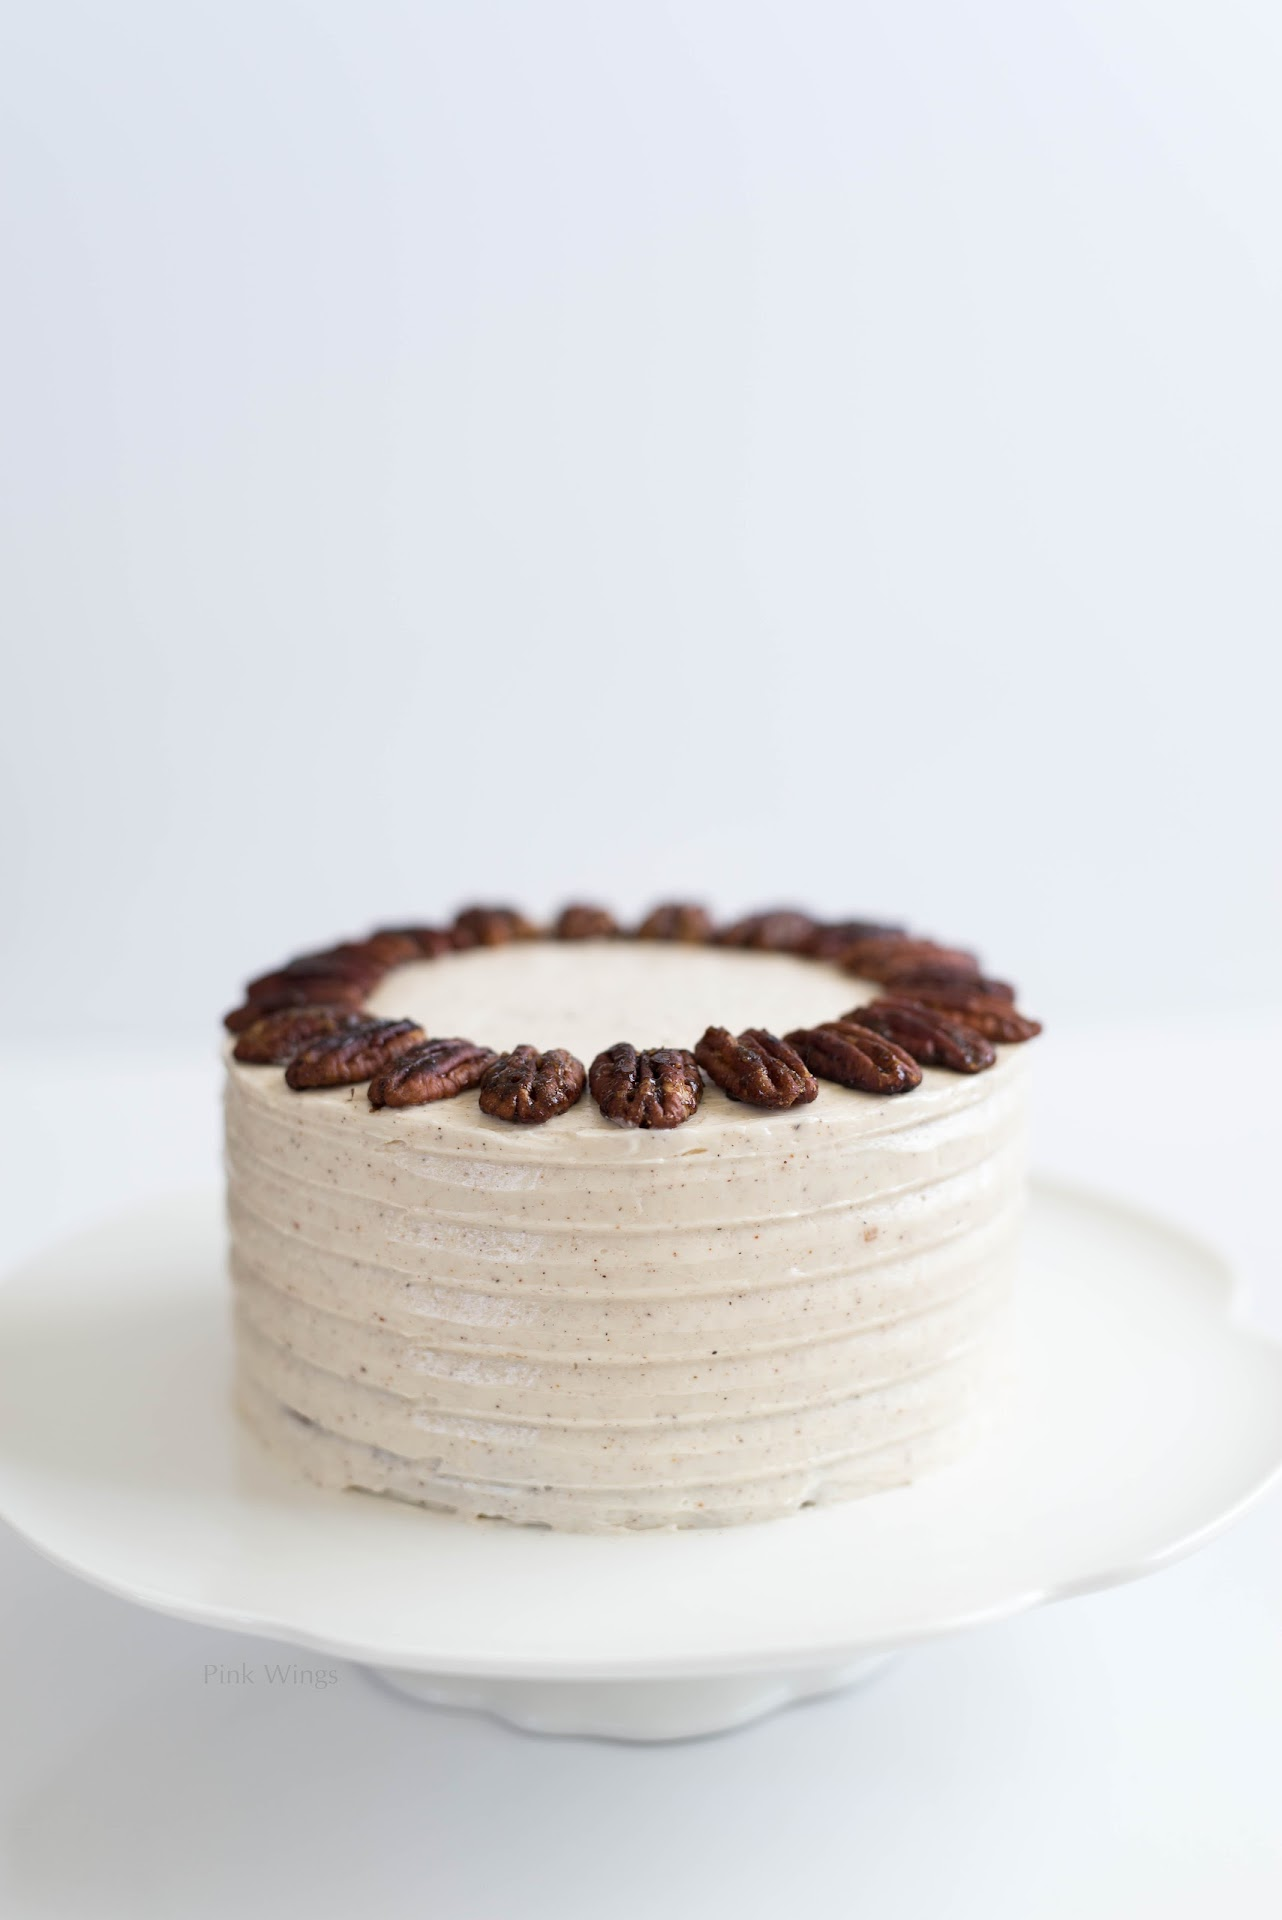 autumn fall dessert, mini cake, 6 inch cake, cinnamon nutmeg frosting, icing, spiced candied pecans